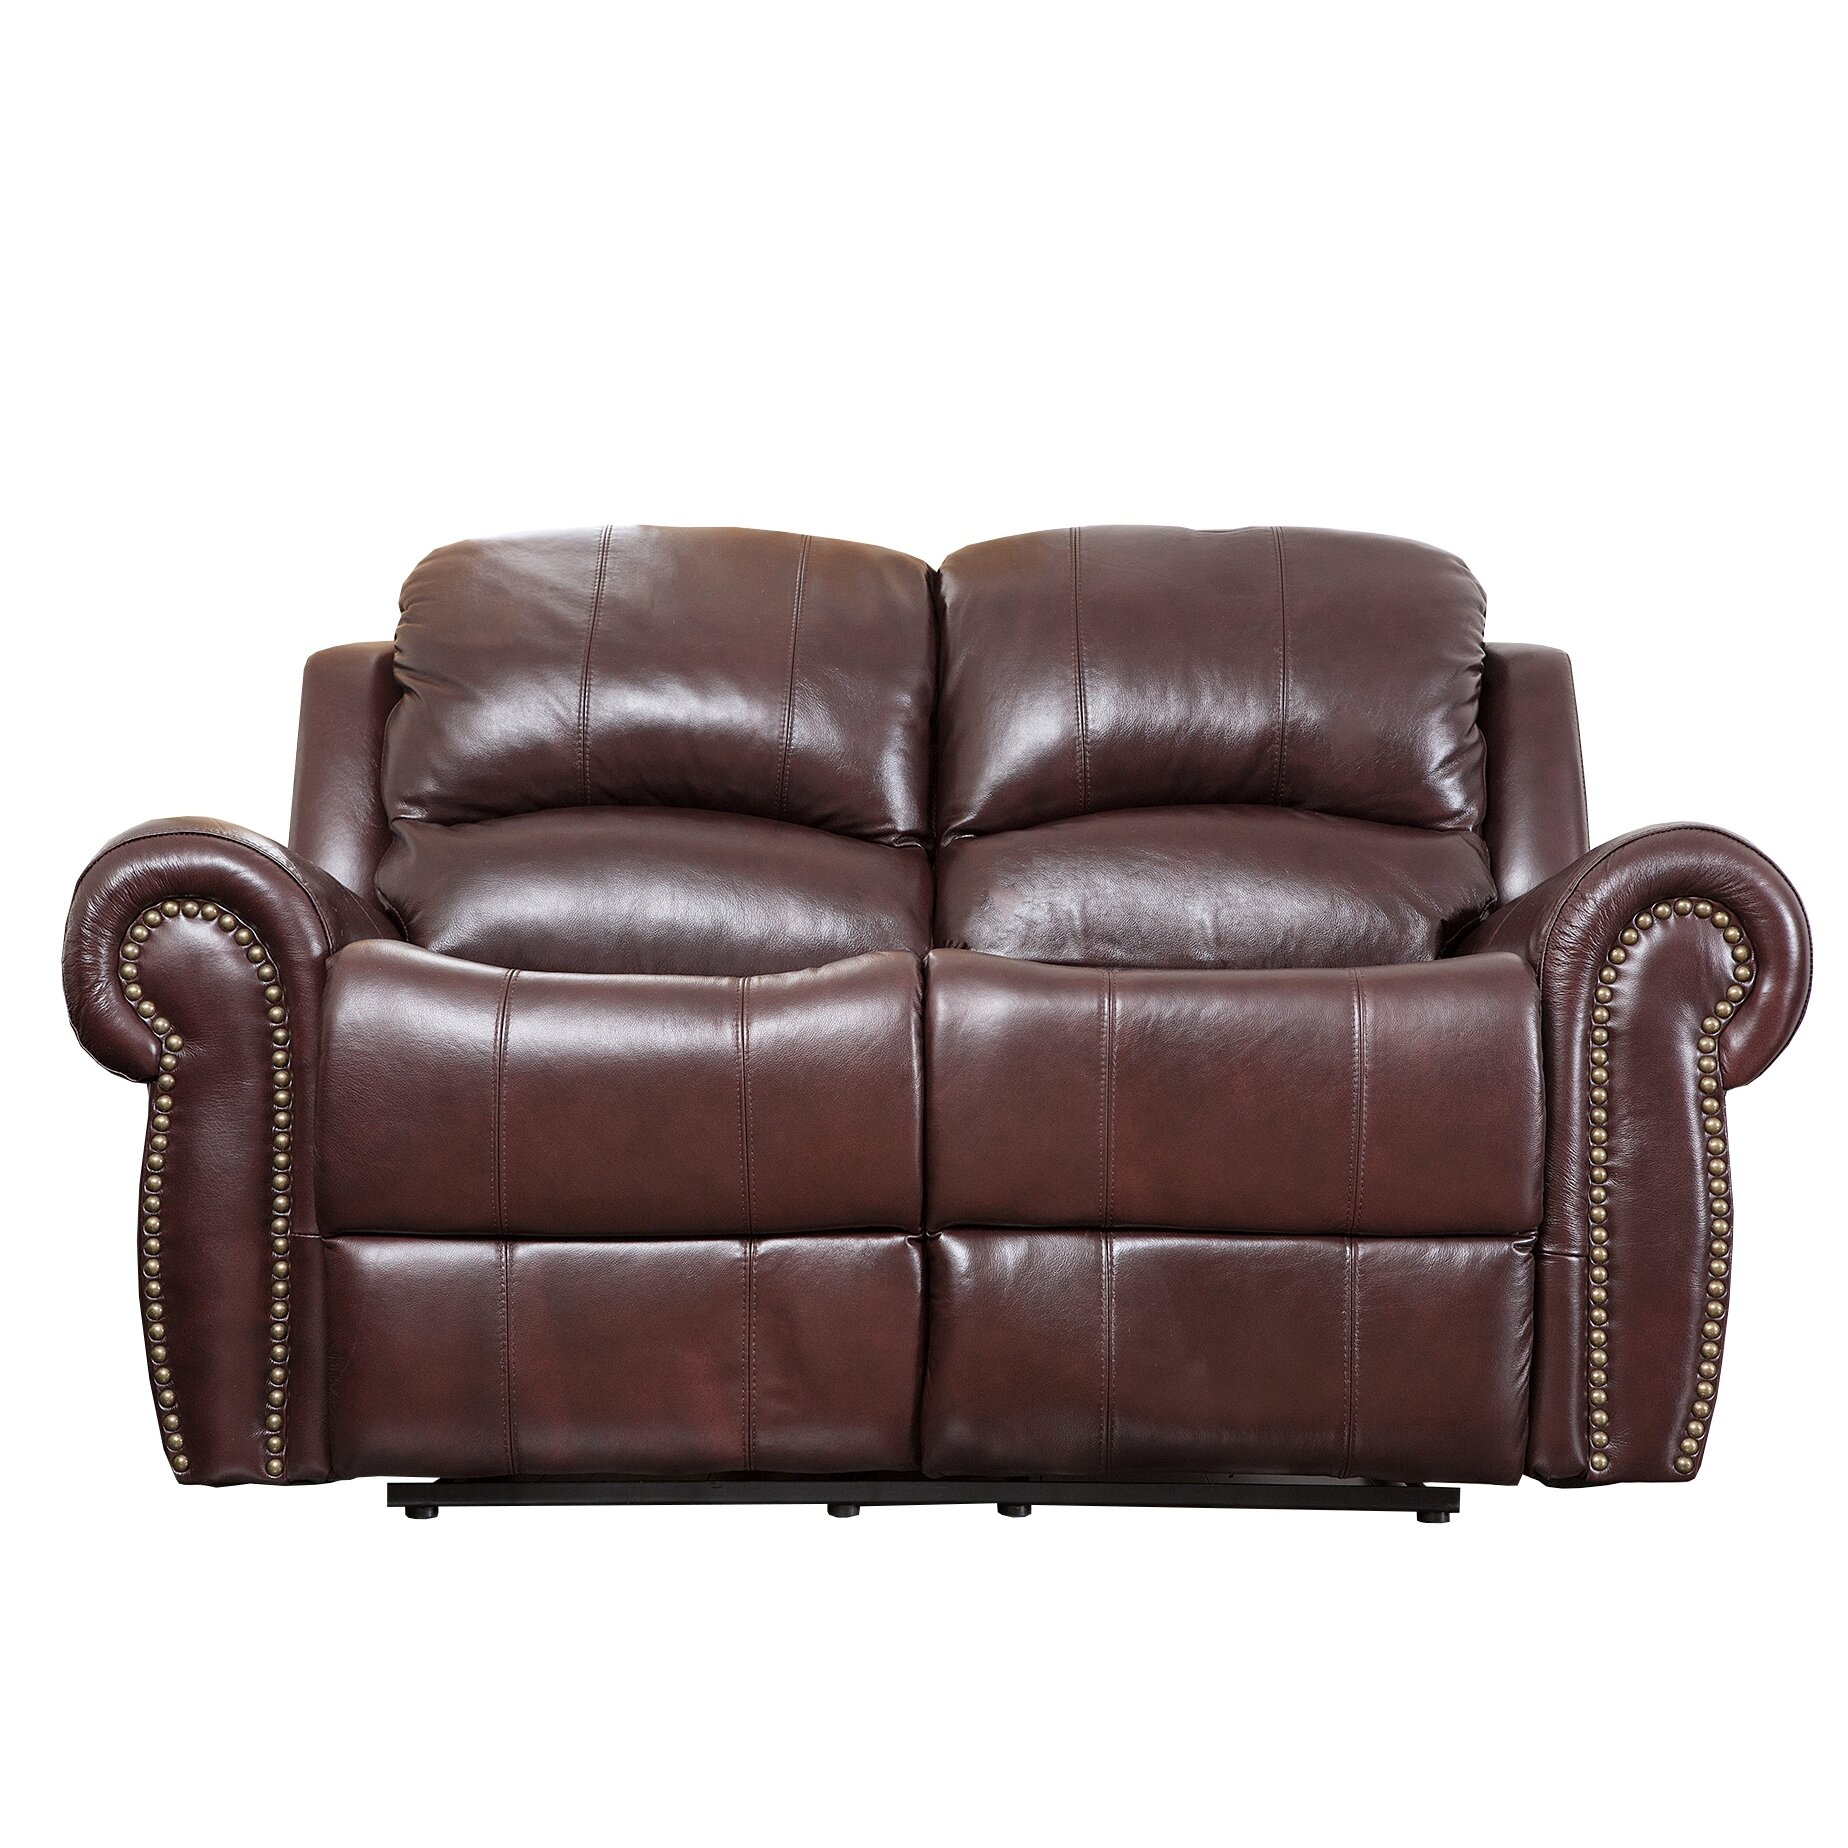 Abbyson living sedona leather reclining loveseat reviews wayfair Leather sofa and loveseat recliner